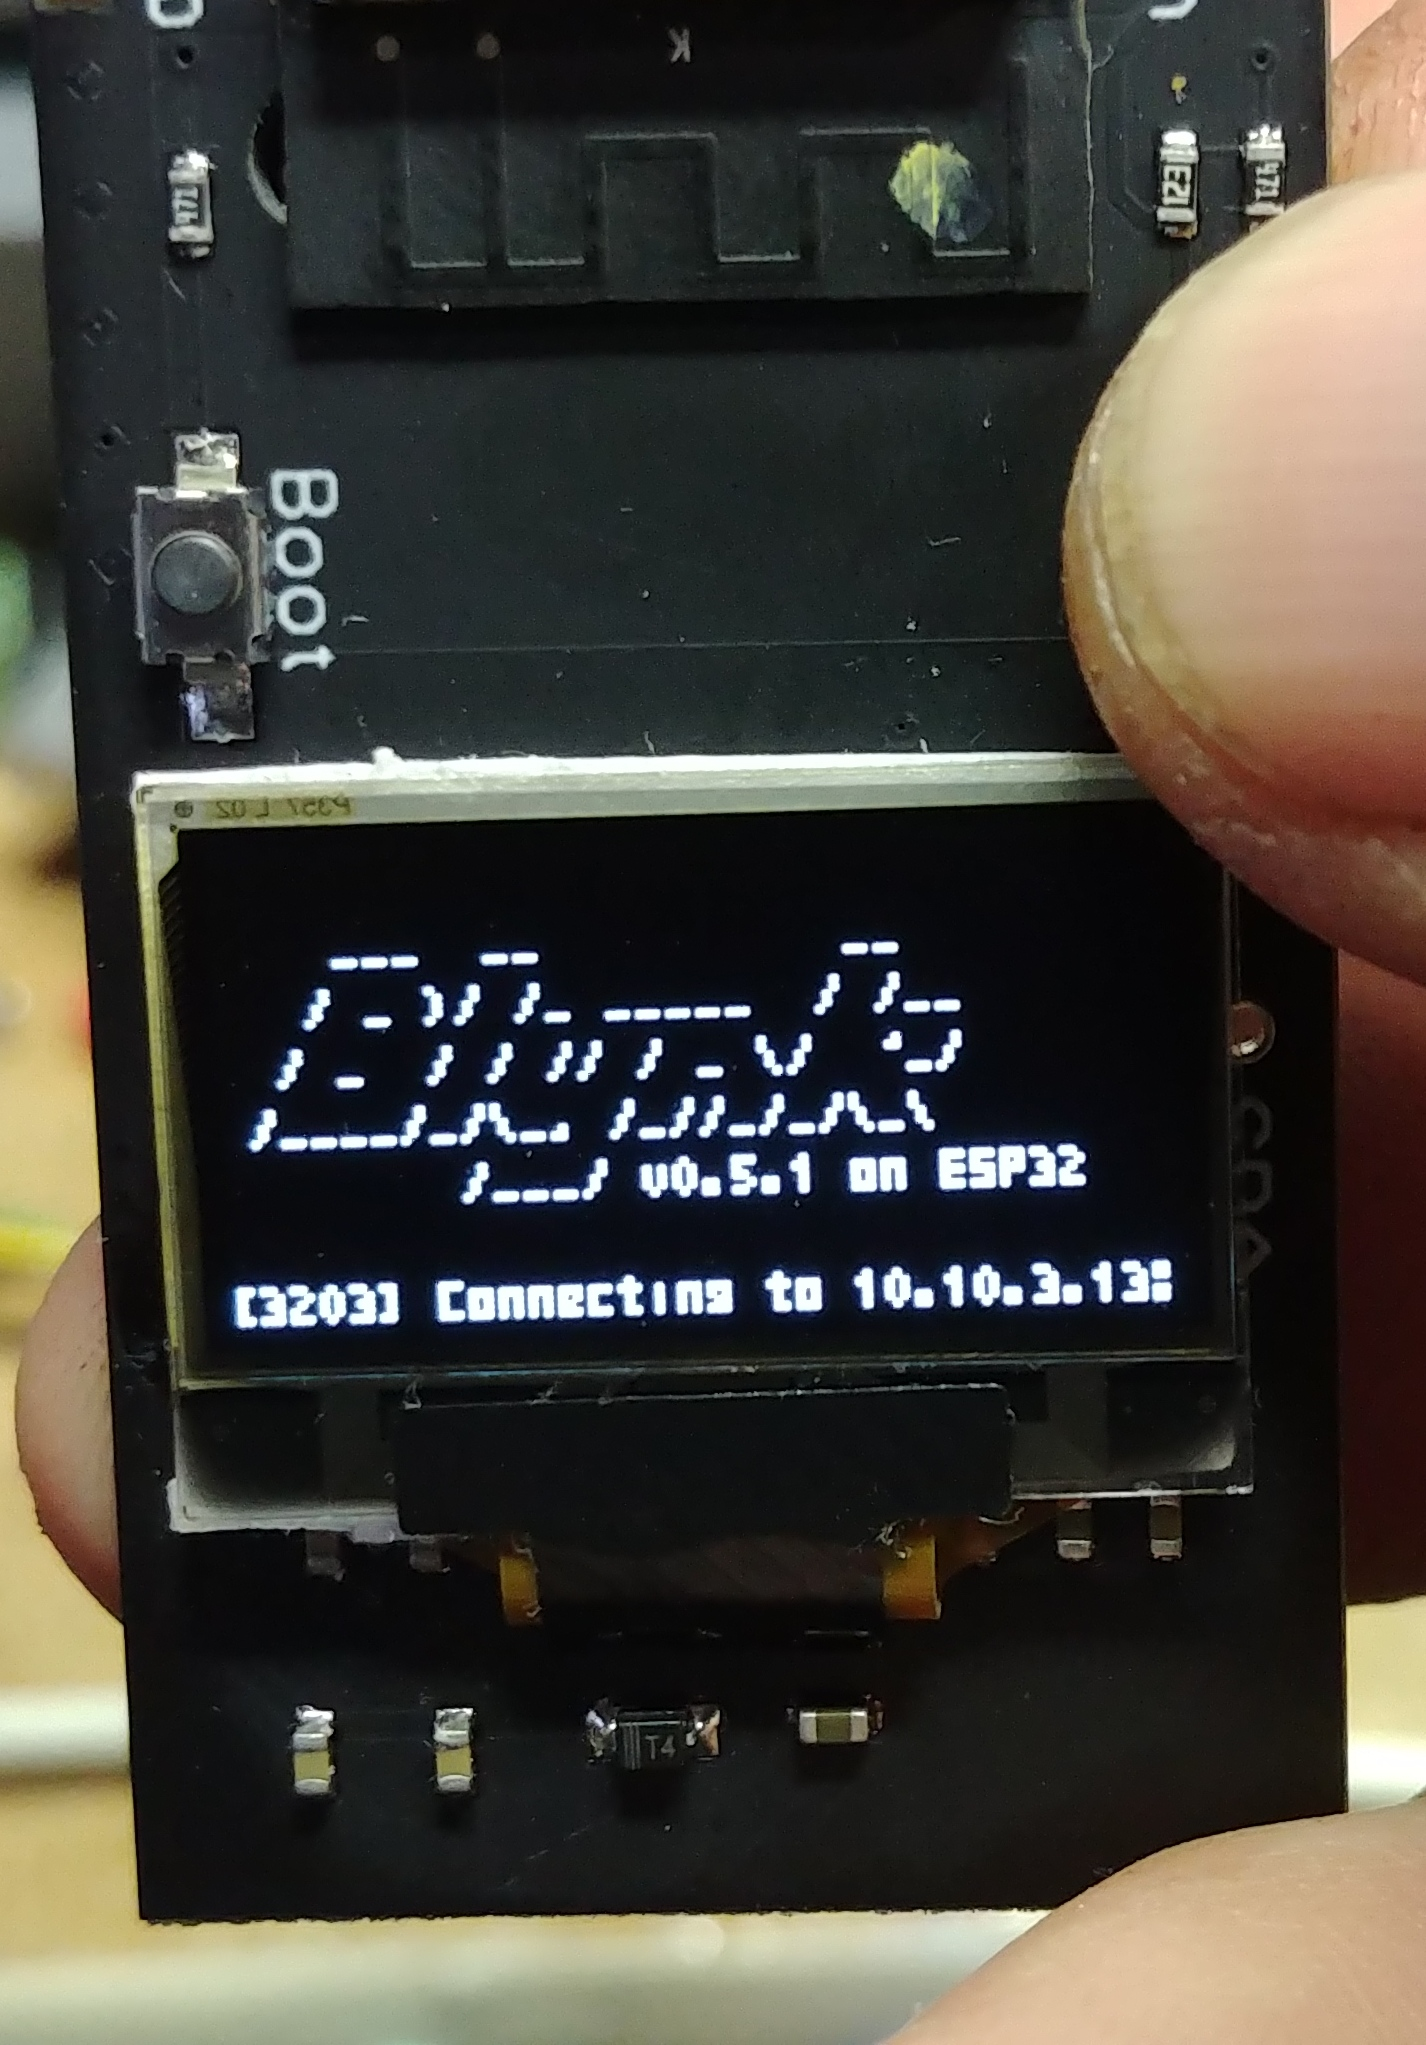 My attempts at transferring BLYNK_PRINT to Various Displays